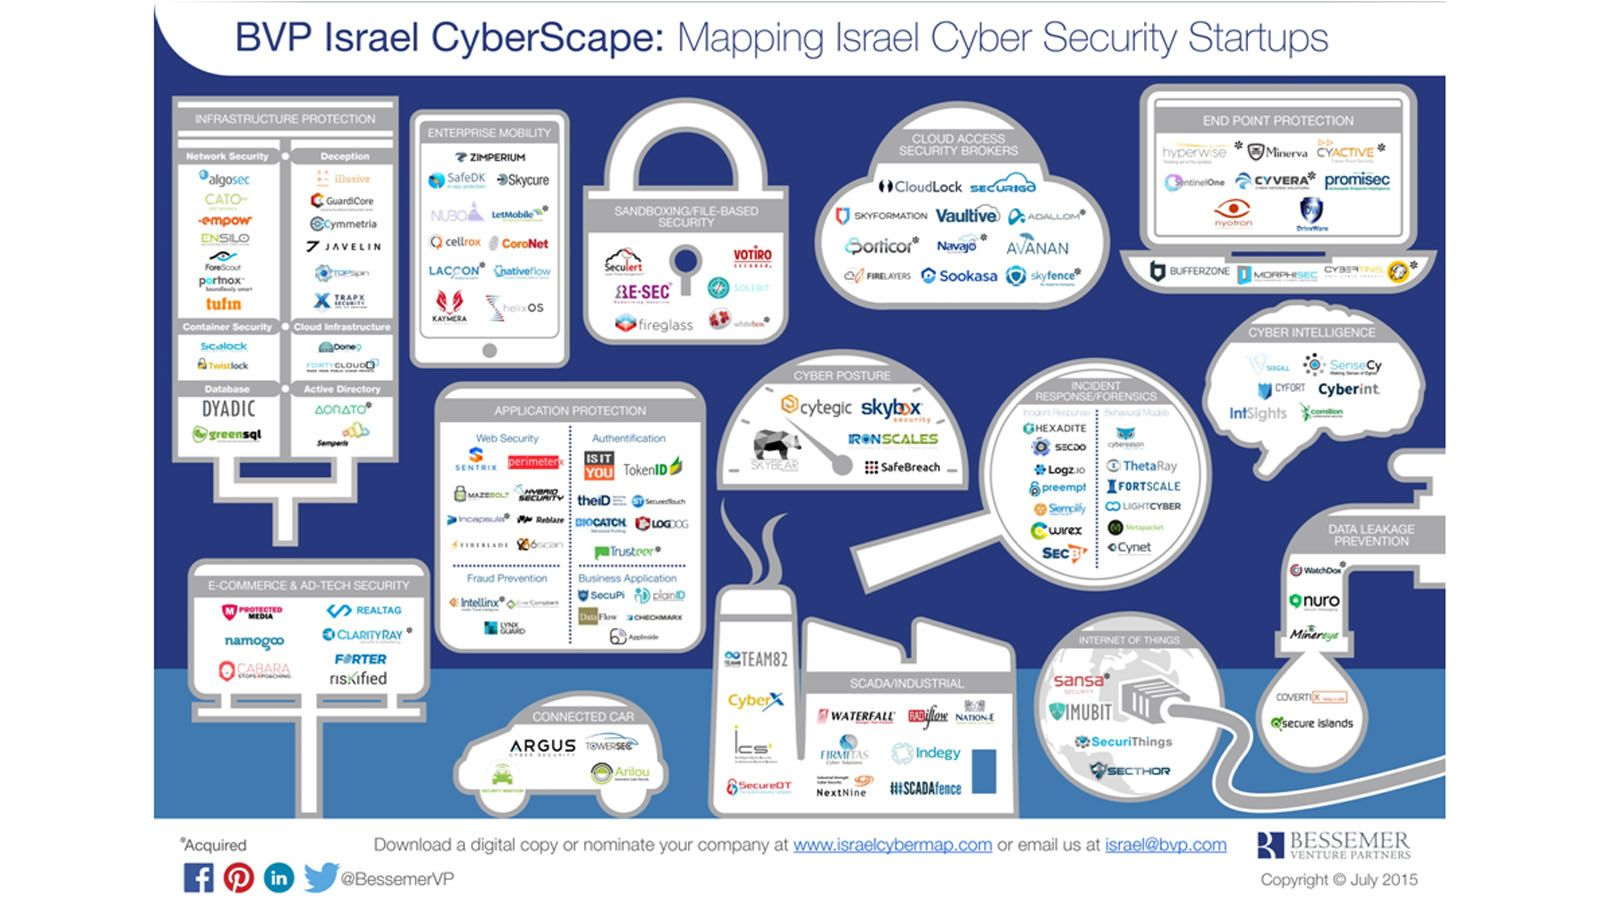 Israeli cybersecurity technologies are going to become ever more vital for the world. Graphic courtesy of BVP Israel